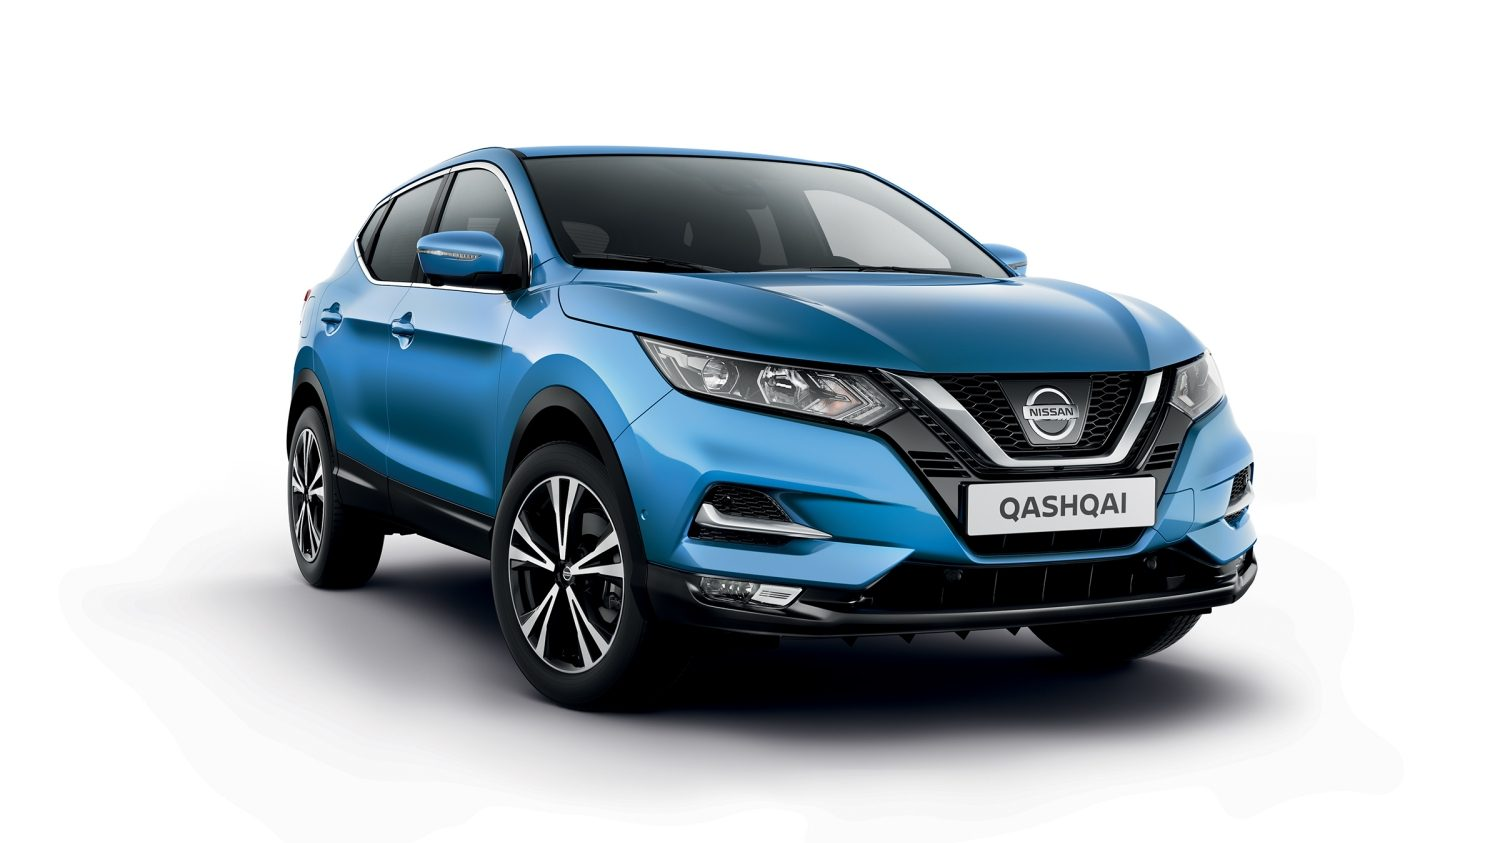 prix caract ristiques du crossover nissan qashqai suv nissan. Black Bedroom Furniture Sets. Home Design Ideas